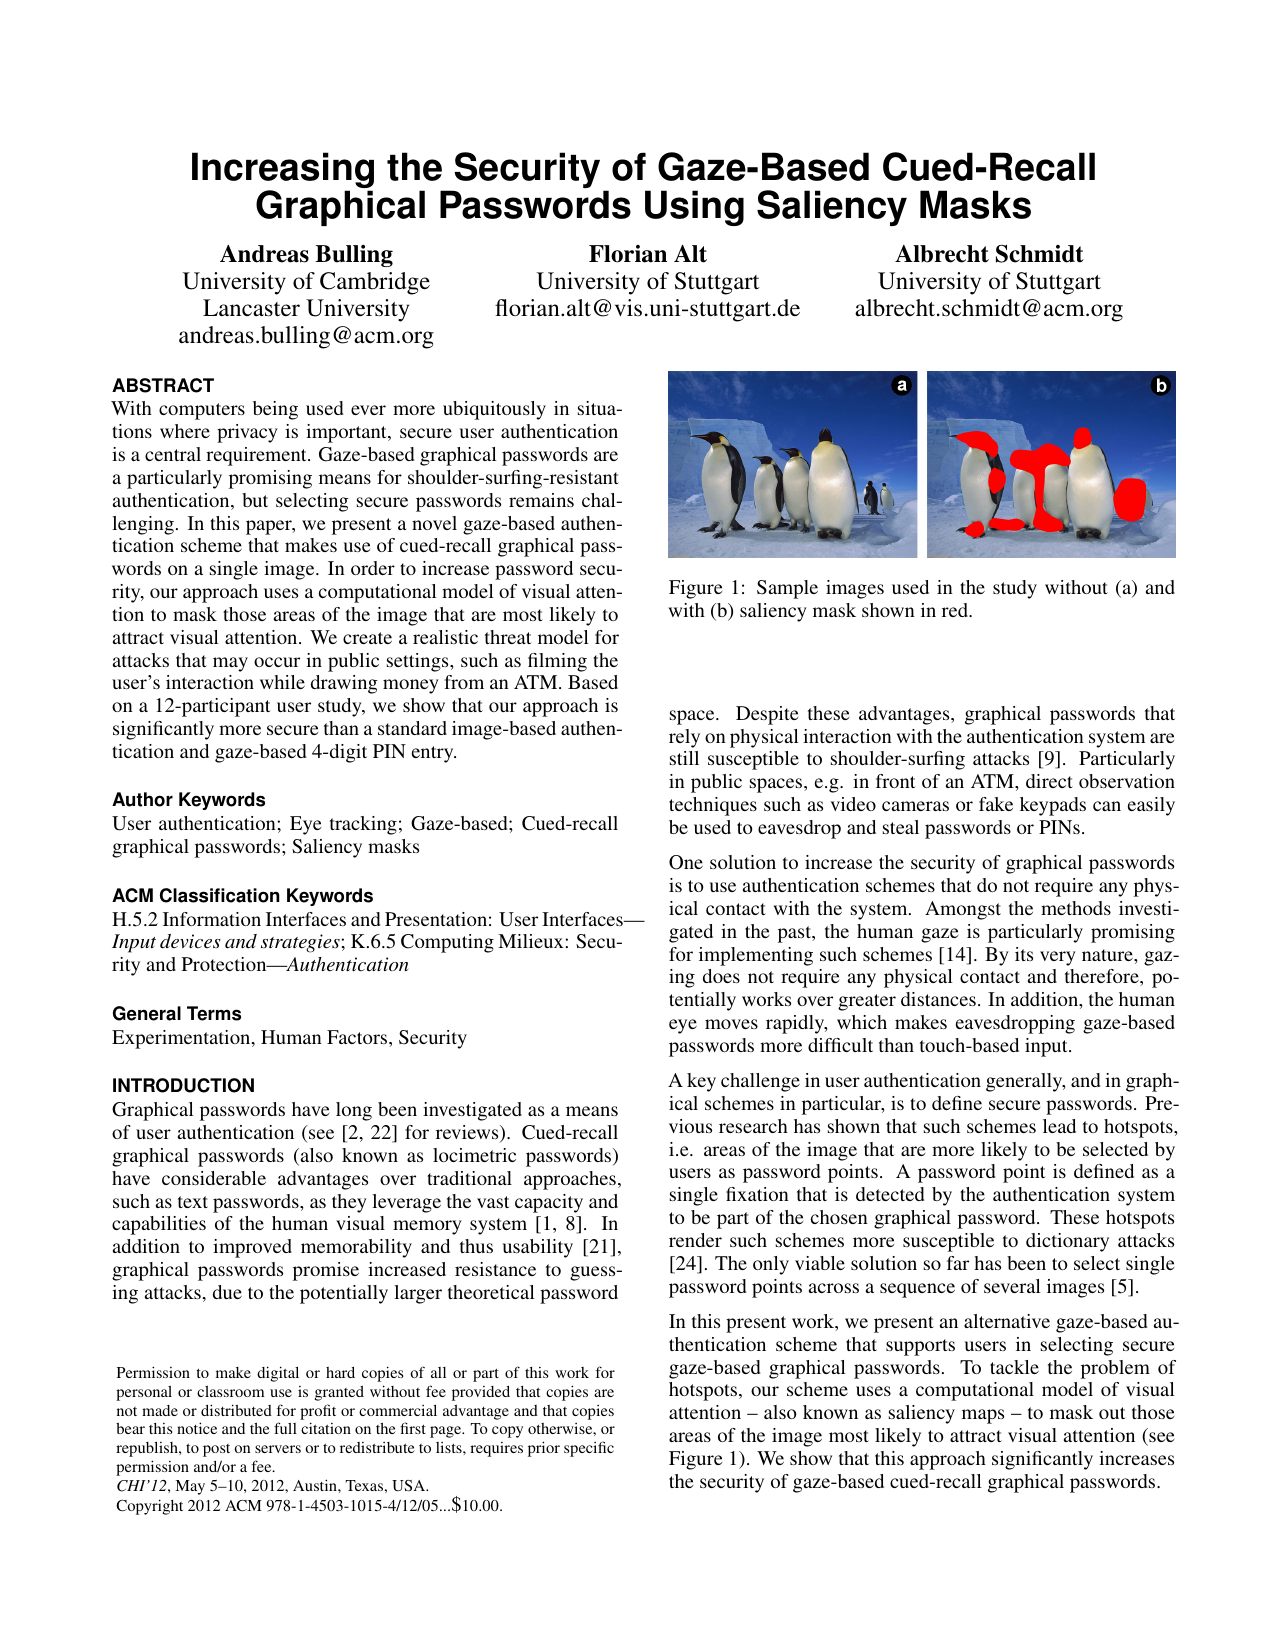 Increasing the Security of Gaze-Based Cued-Recall Graphical Passwords Using Saliency Masks